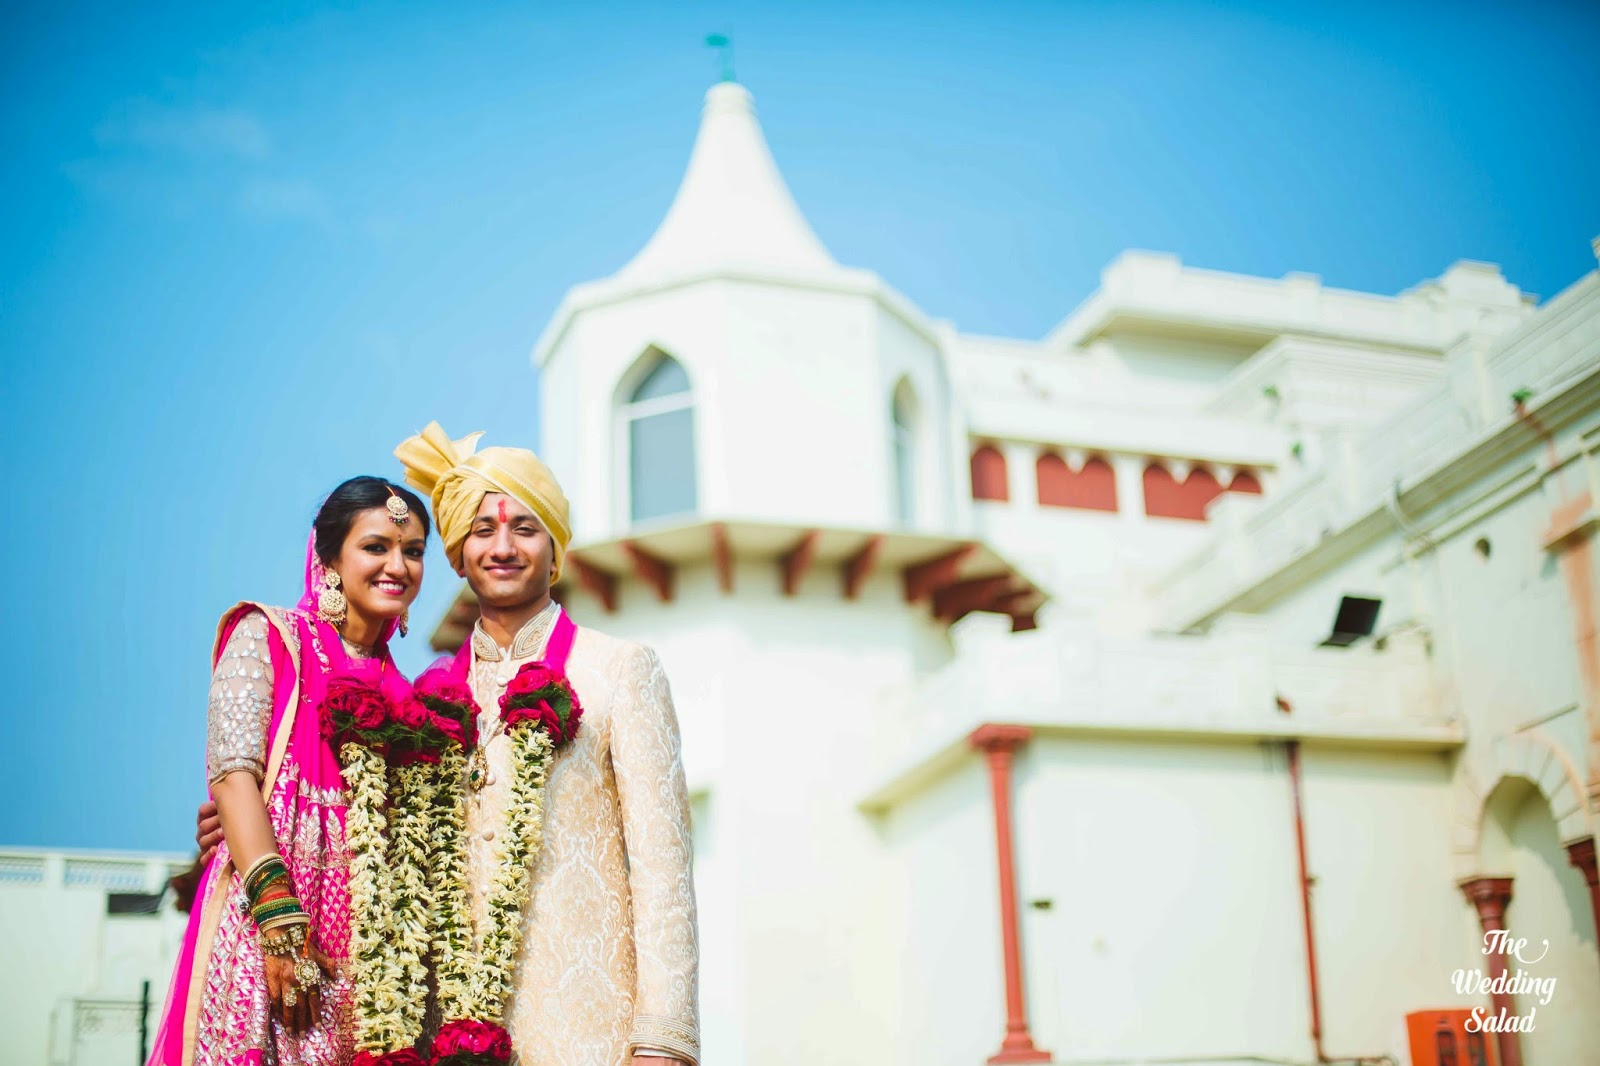 Deepali devesh noor us sabah palace bhopal destination deepali devesh noor us sabah palace bhopal destination wedding in bhopal junglespirit Image collections